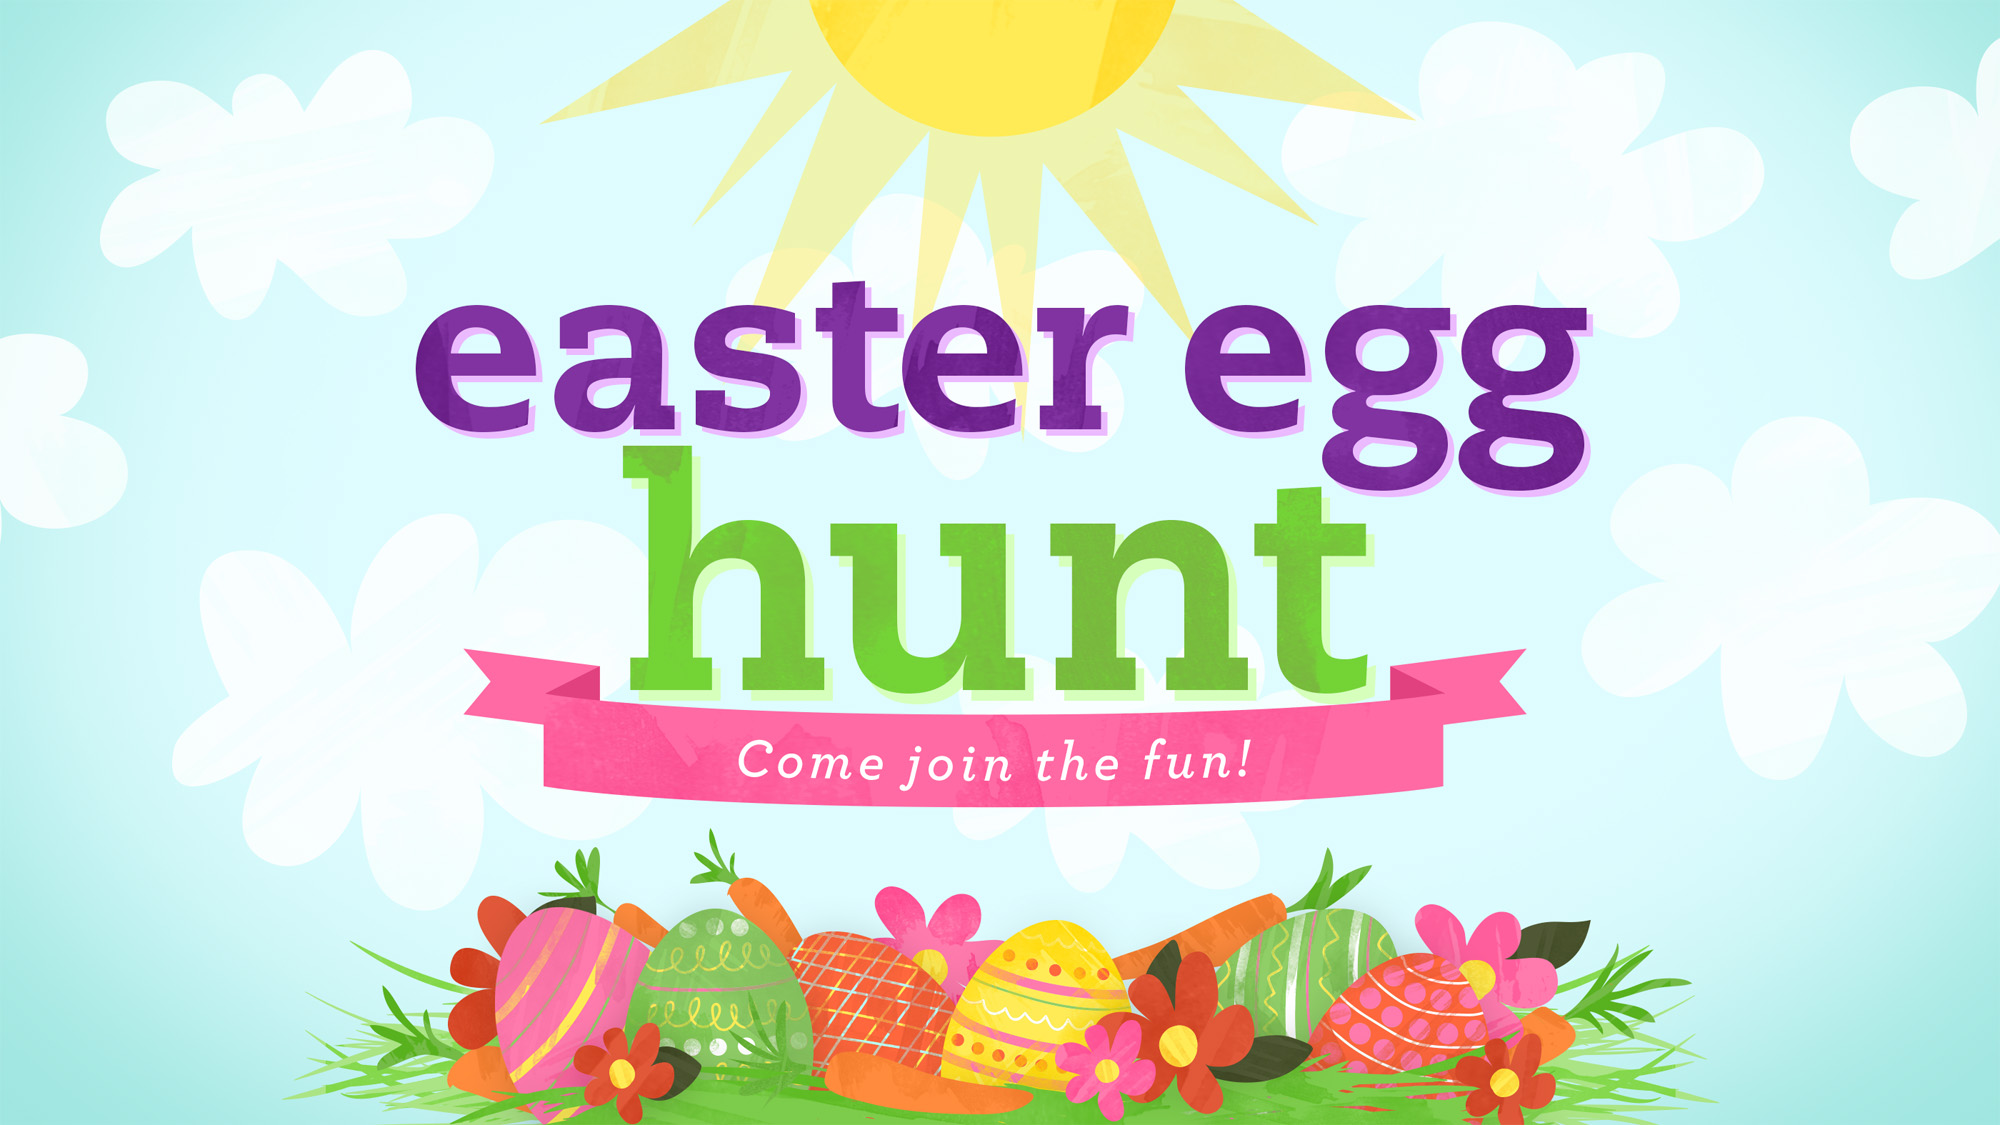 easter egg hunt saturday OFF 70% - Online Shopping Site for Fashion &  Lifestyle.